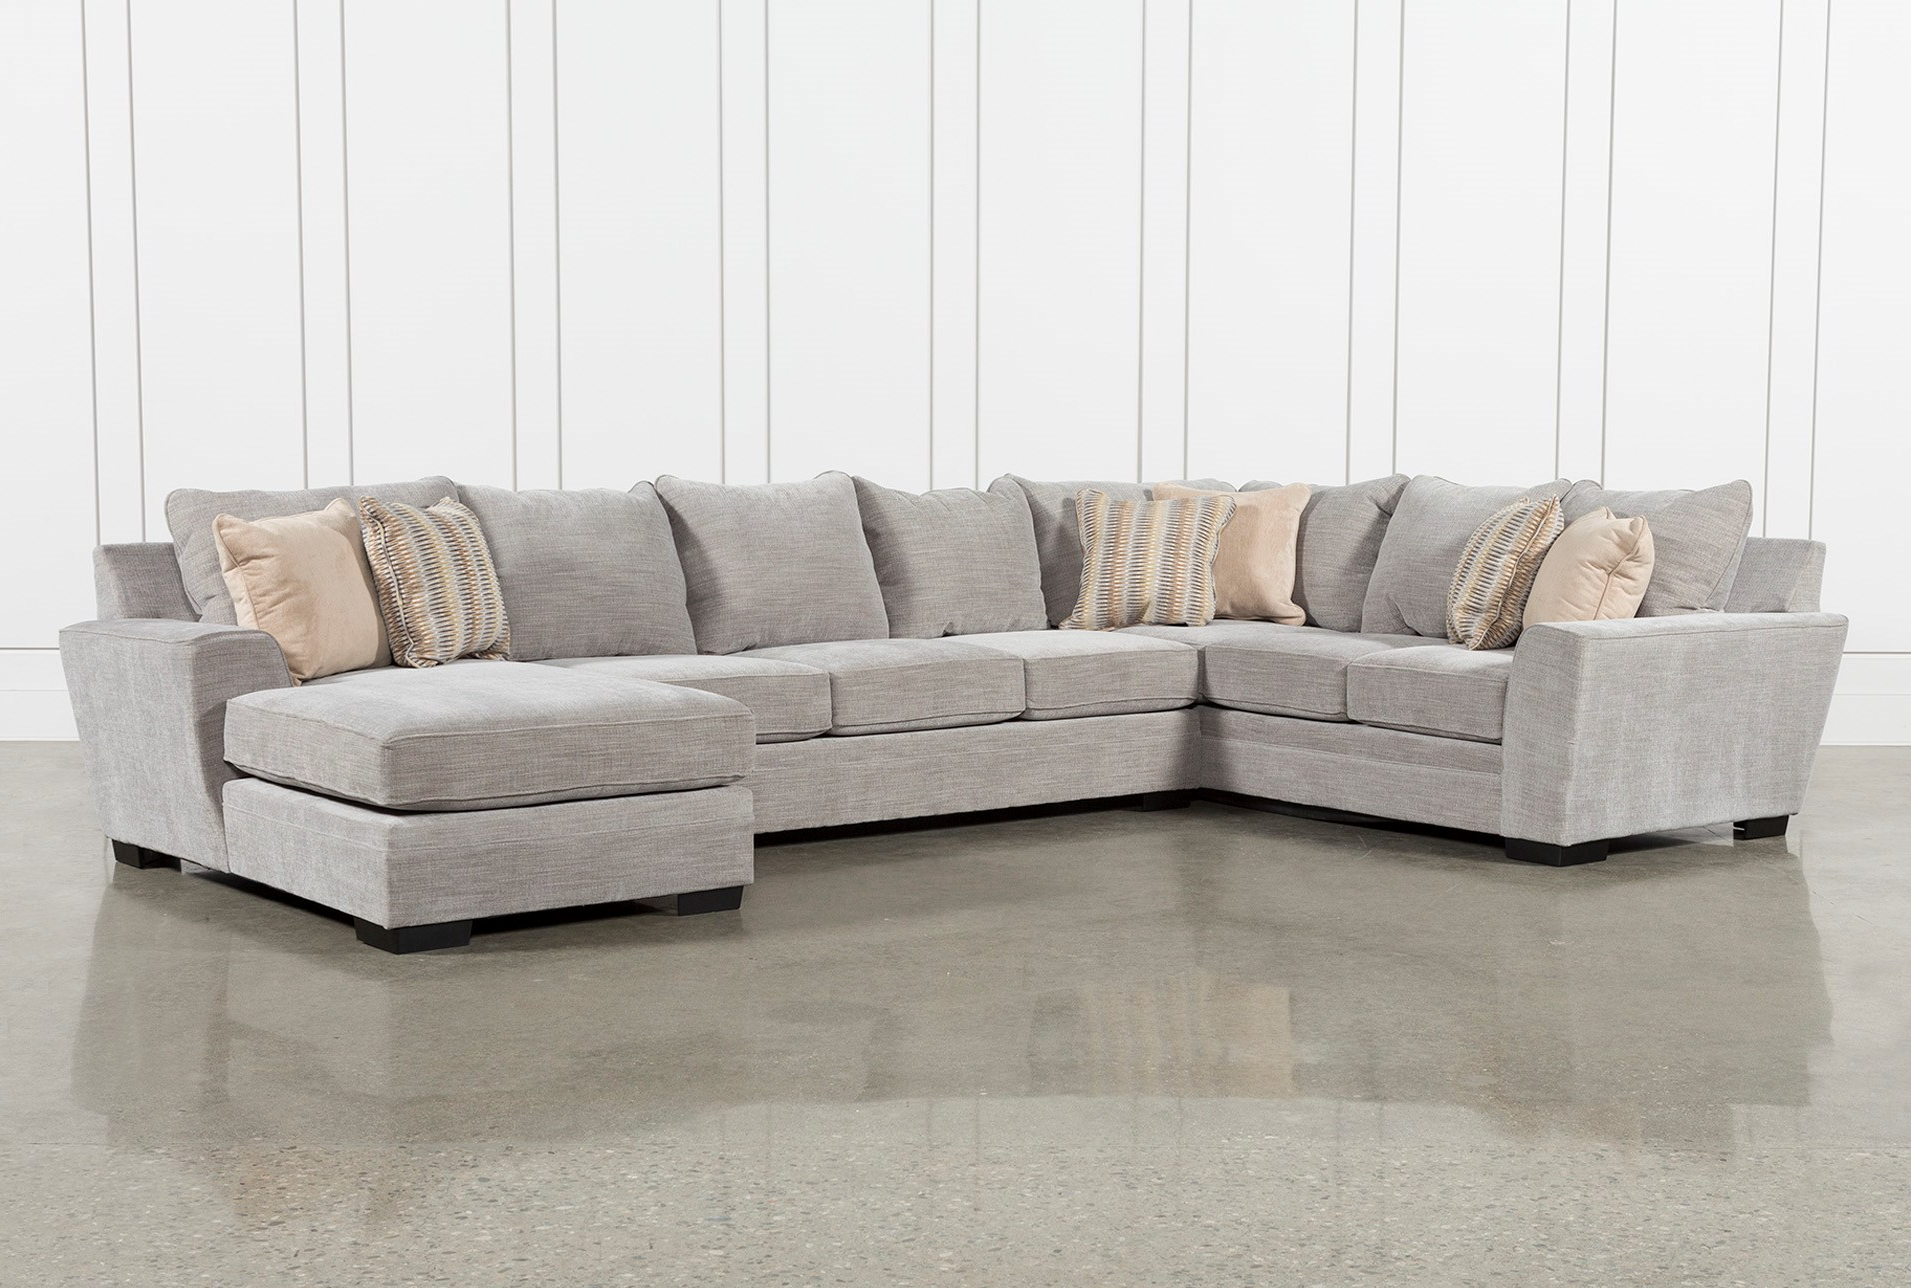 Most Up To Date Malbry Point 3 Piece Sectionals With Laf Chaise For Delano Smoke 3 Piece Sectional Living Spaces – Locsbyhelenelorasa (Gallery 8 of 20)